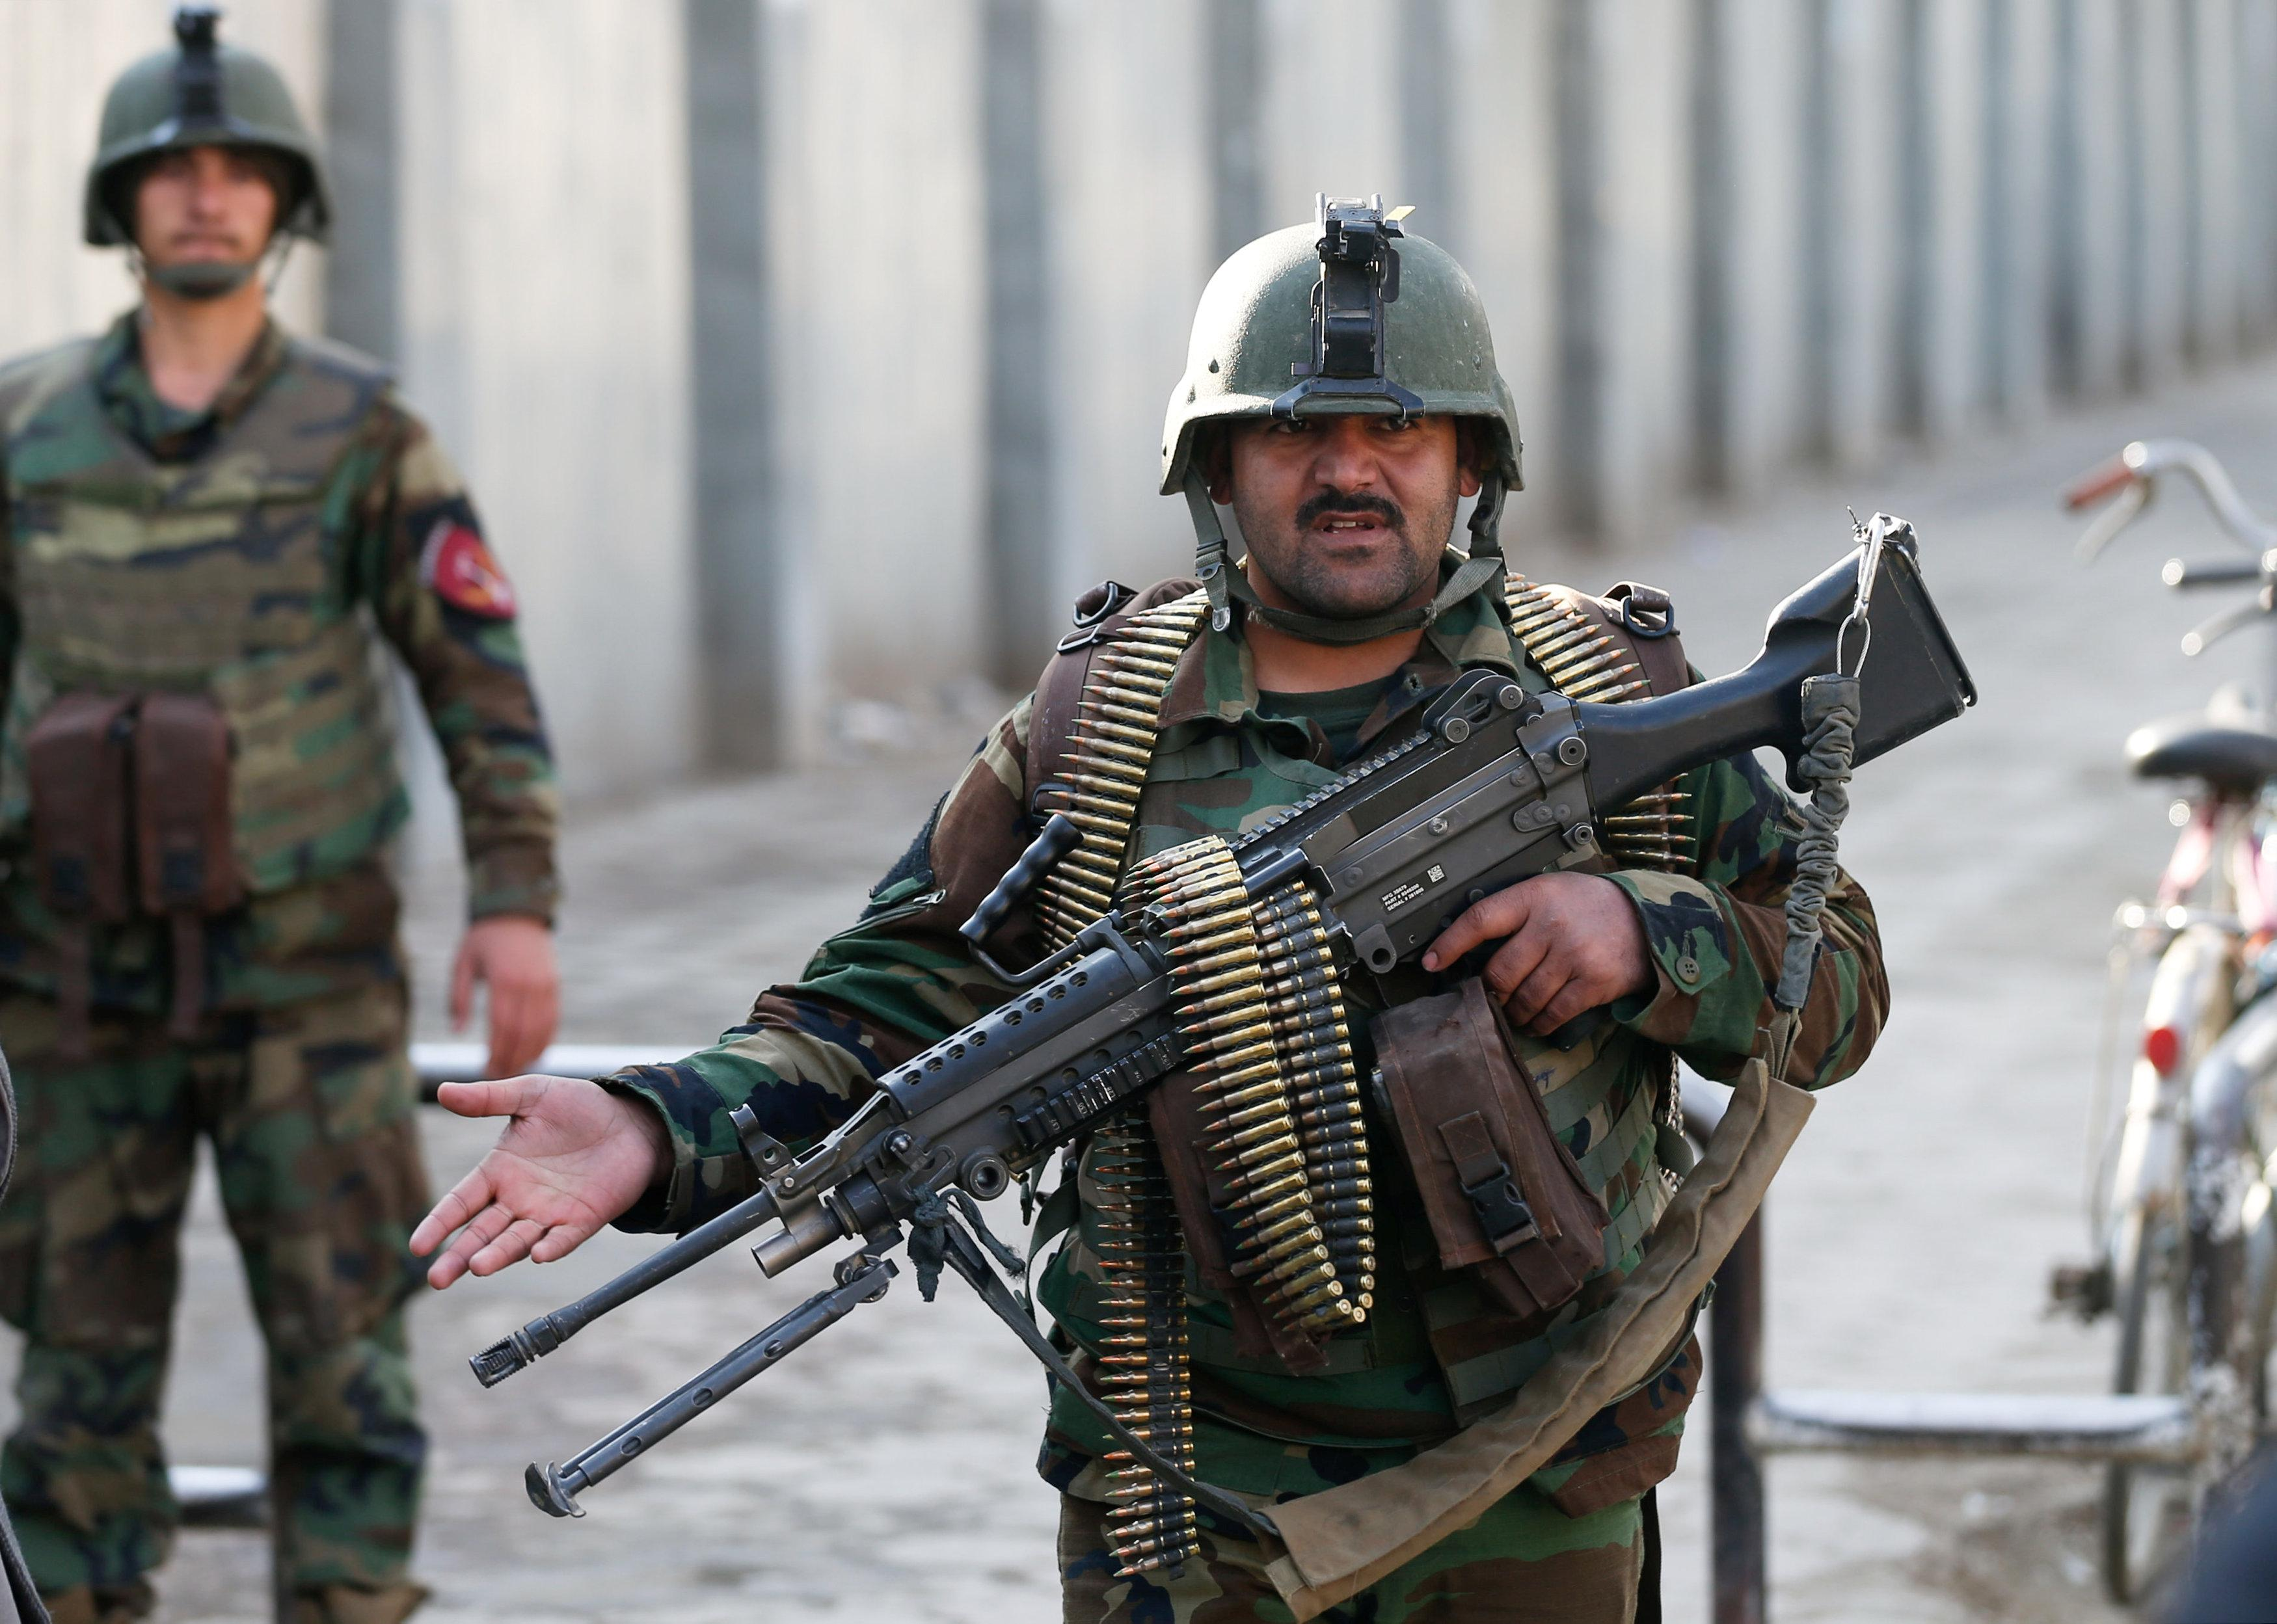 Over 30 killed as gunmen dressed as medics attack Afghan military